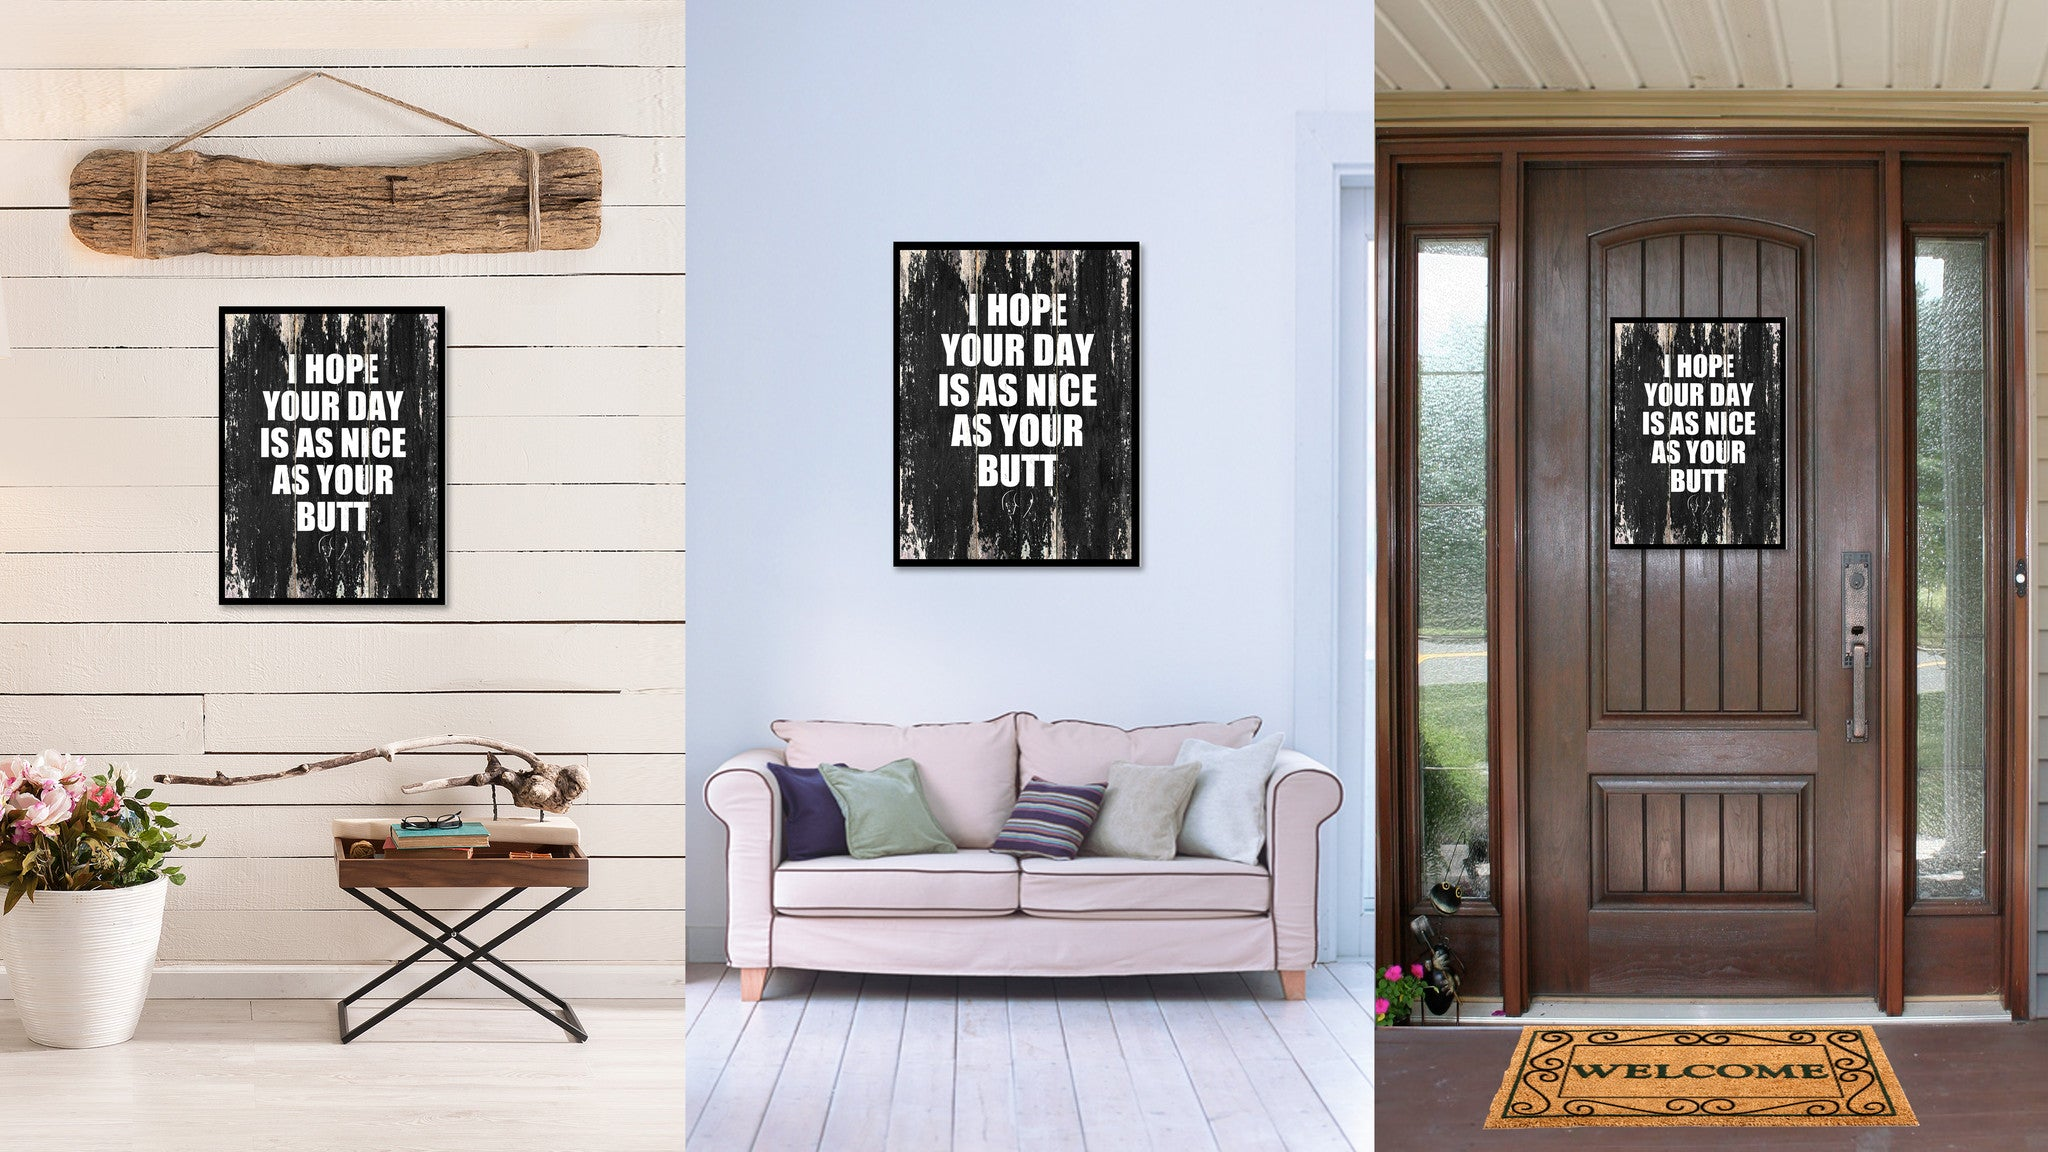 I hope your day is as nice as your butt Funny Quote Saying Canvas Print with Picture Frame Home Decor Wall Art